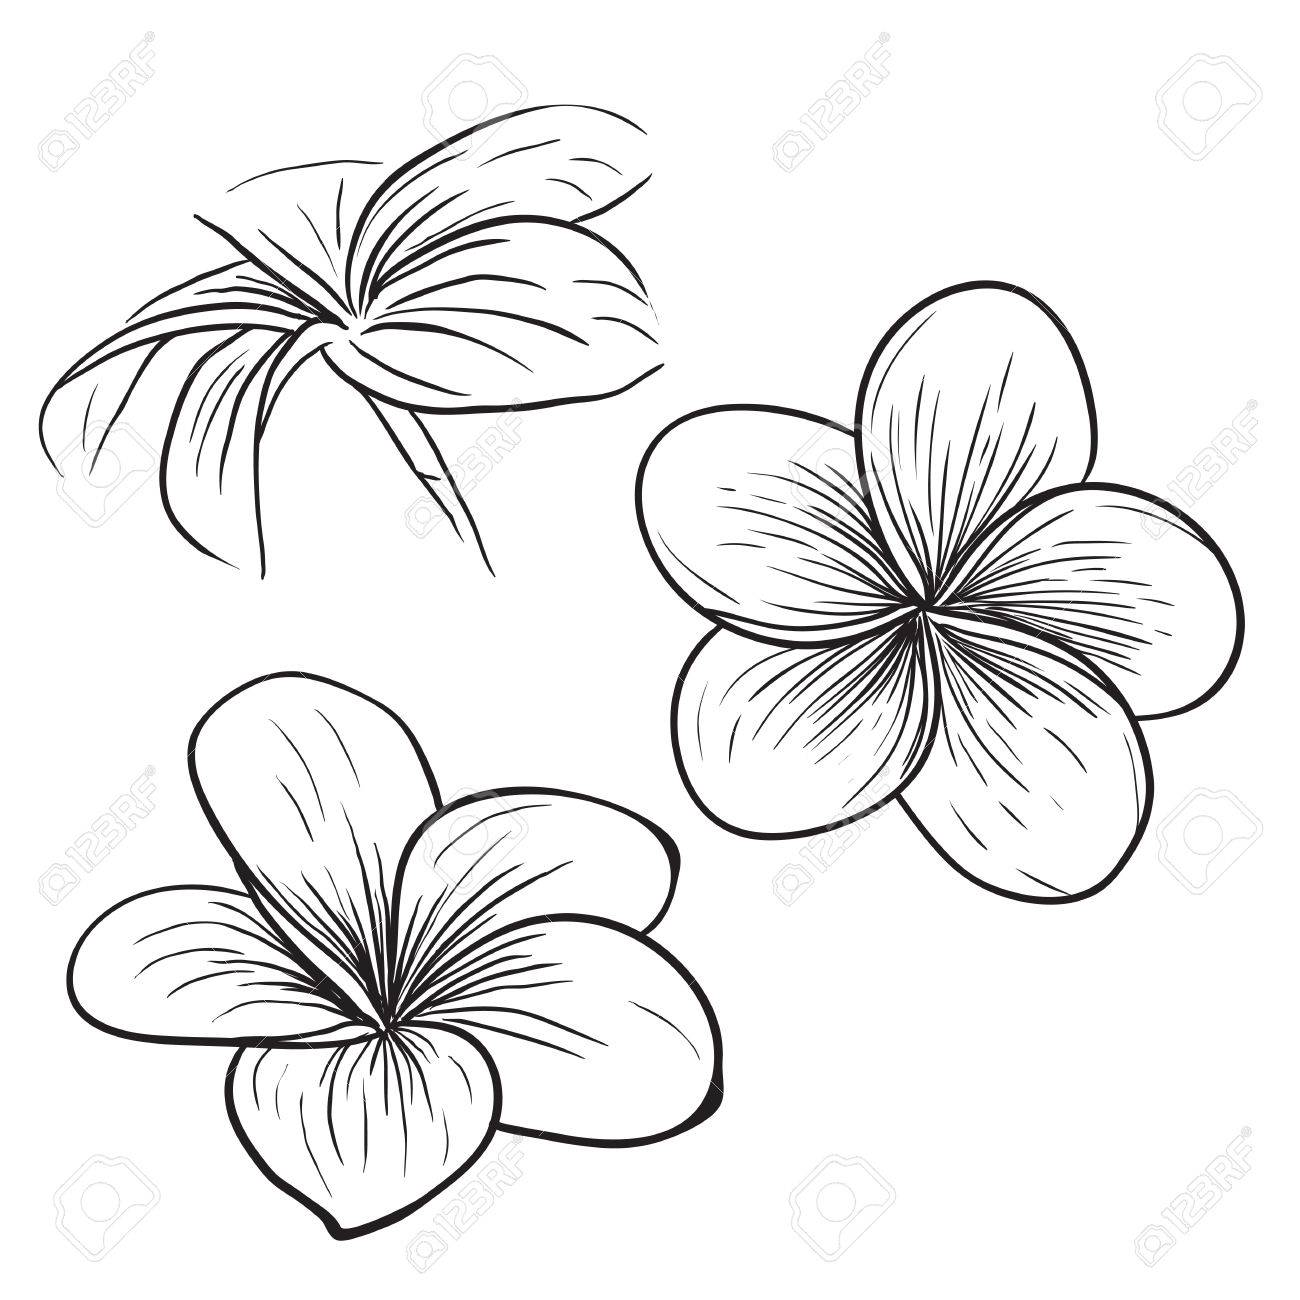 Tropical Flower Line Drawing : Plumeria line drawing at getdrawings free for